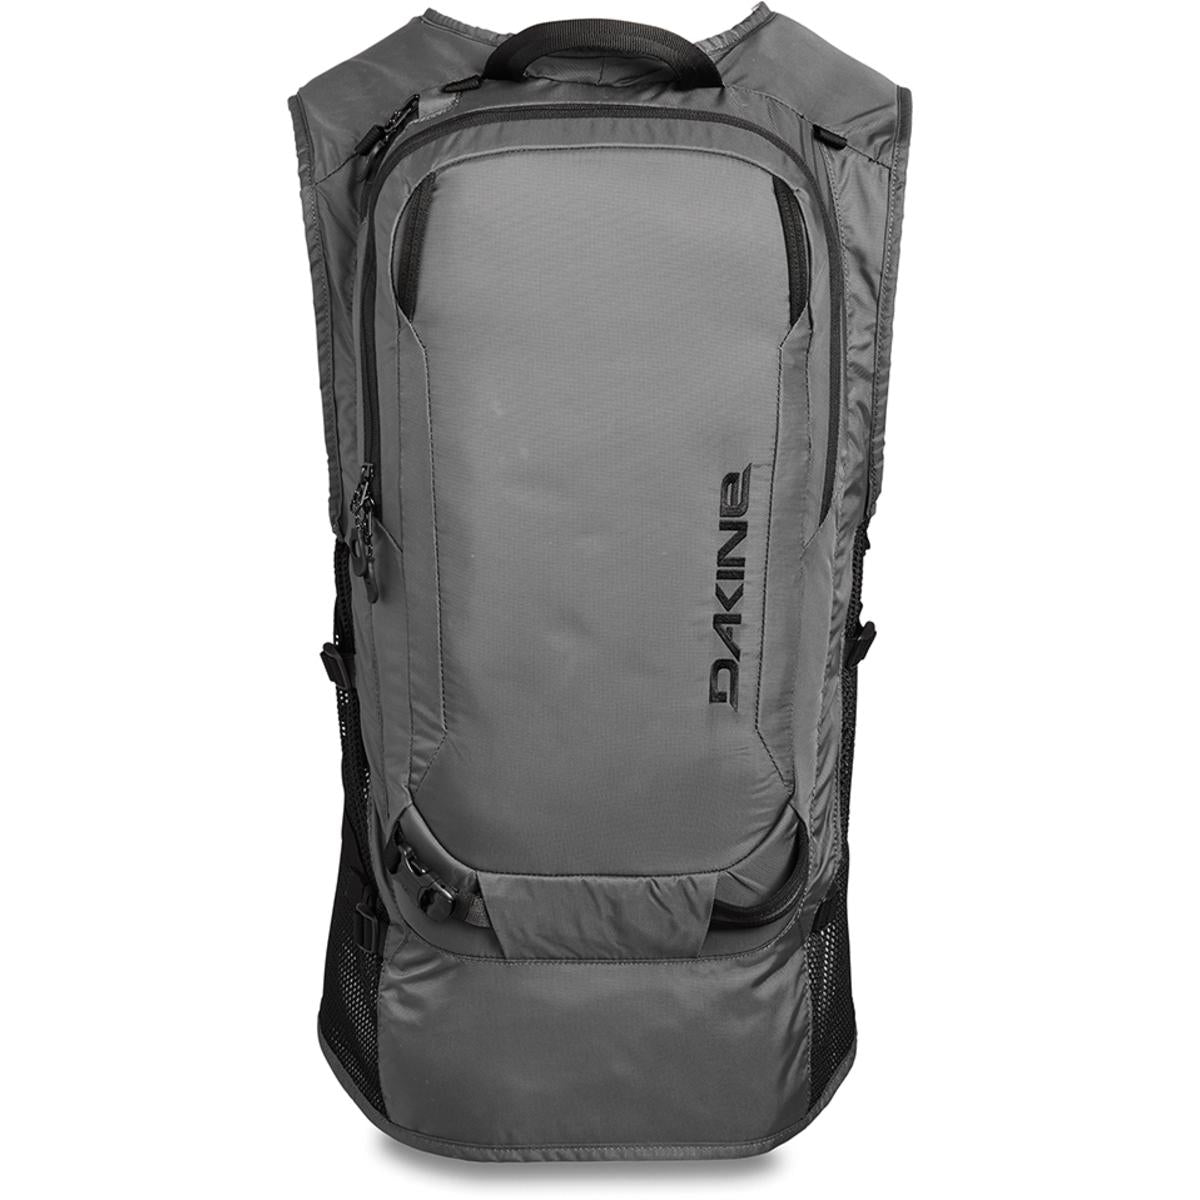 18d7439fa1 Amazon.com   Dakine Heli Vest   Sports   Outdoors